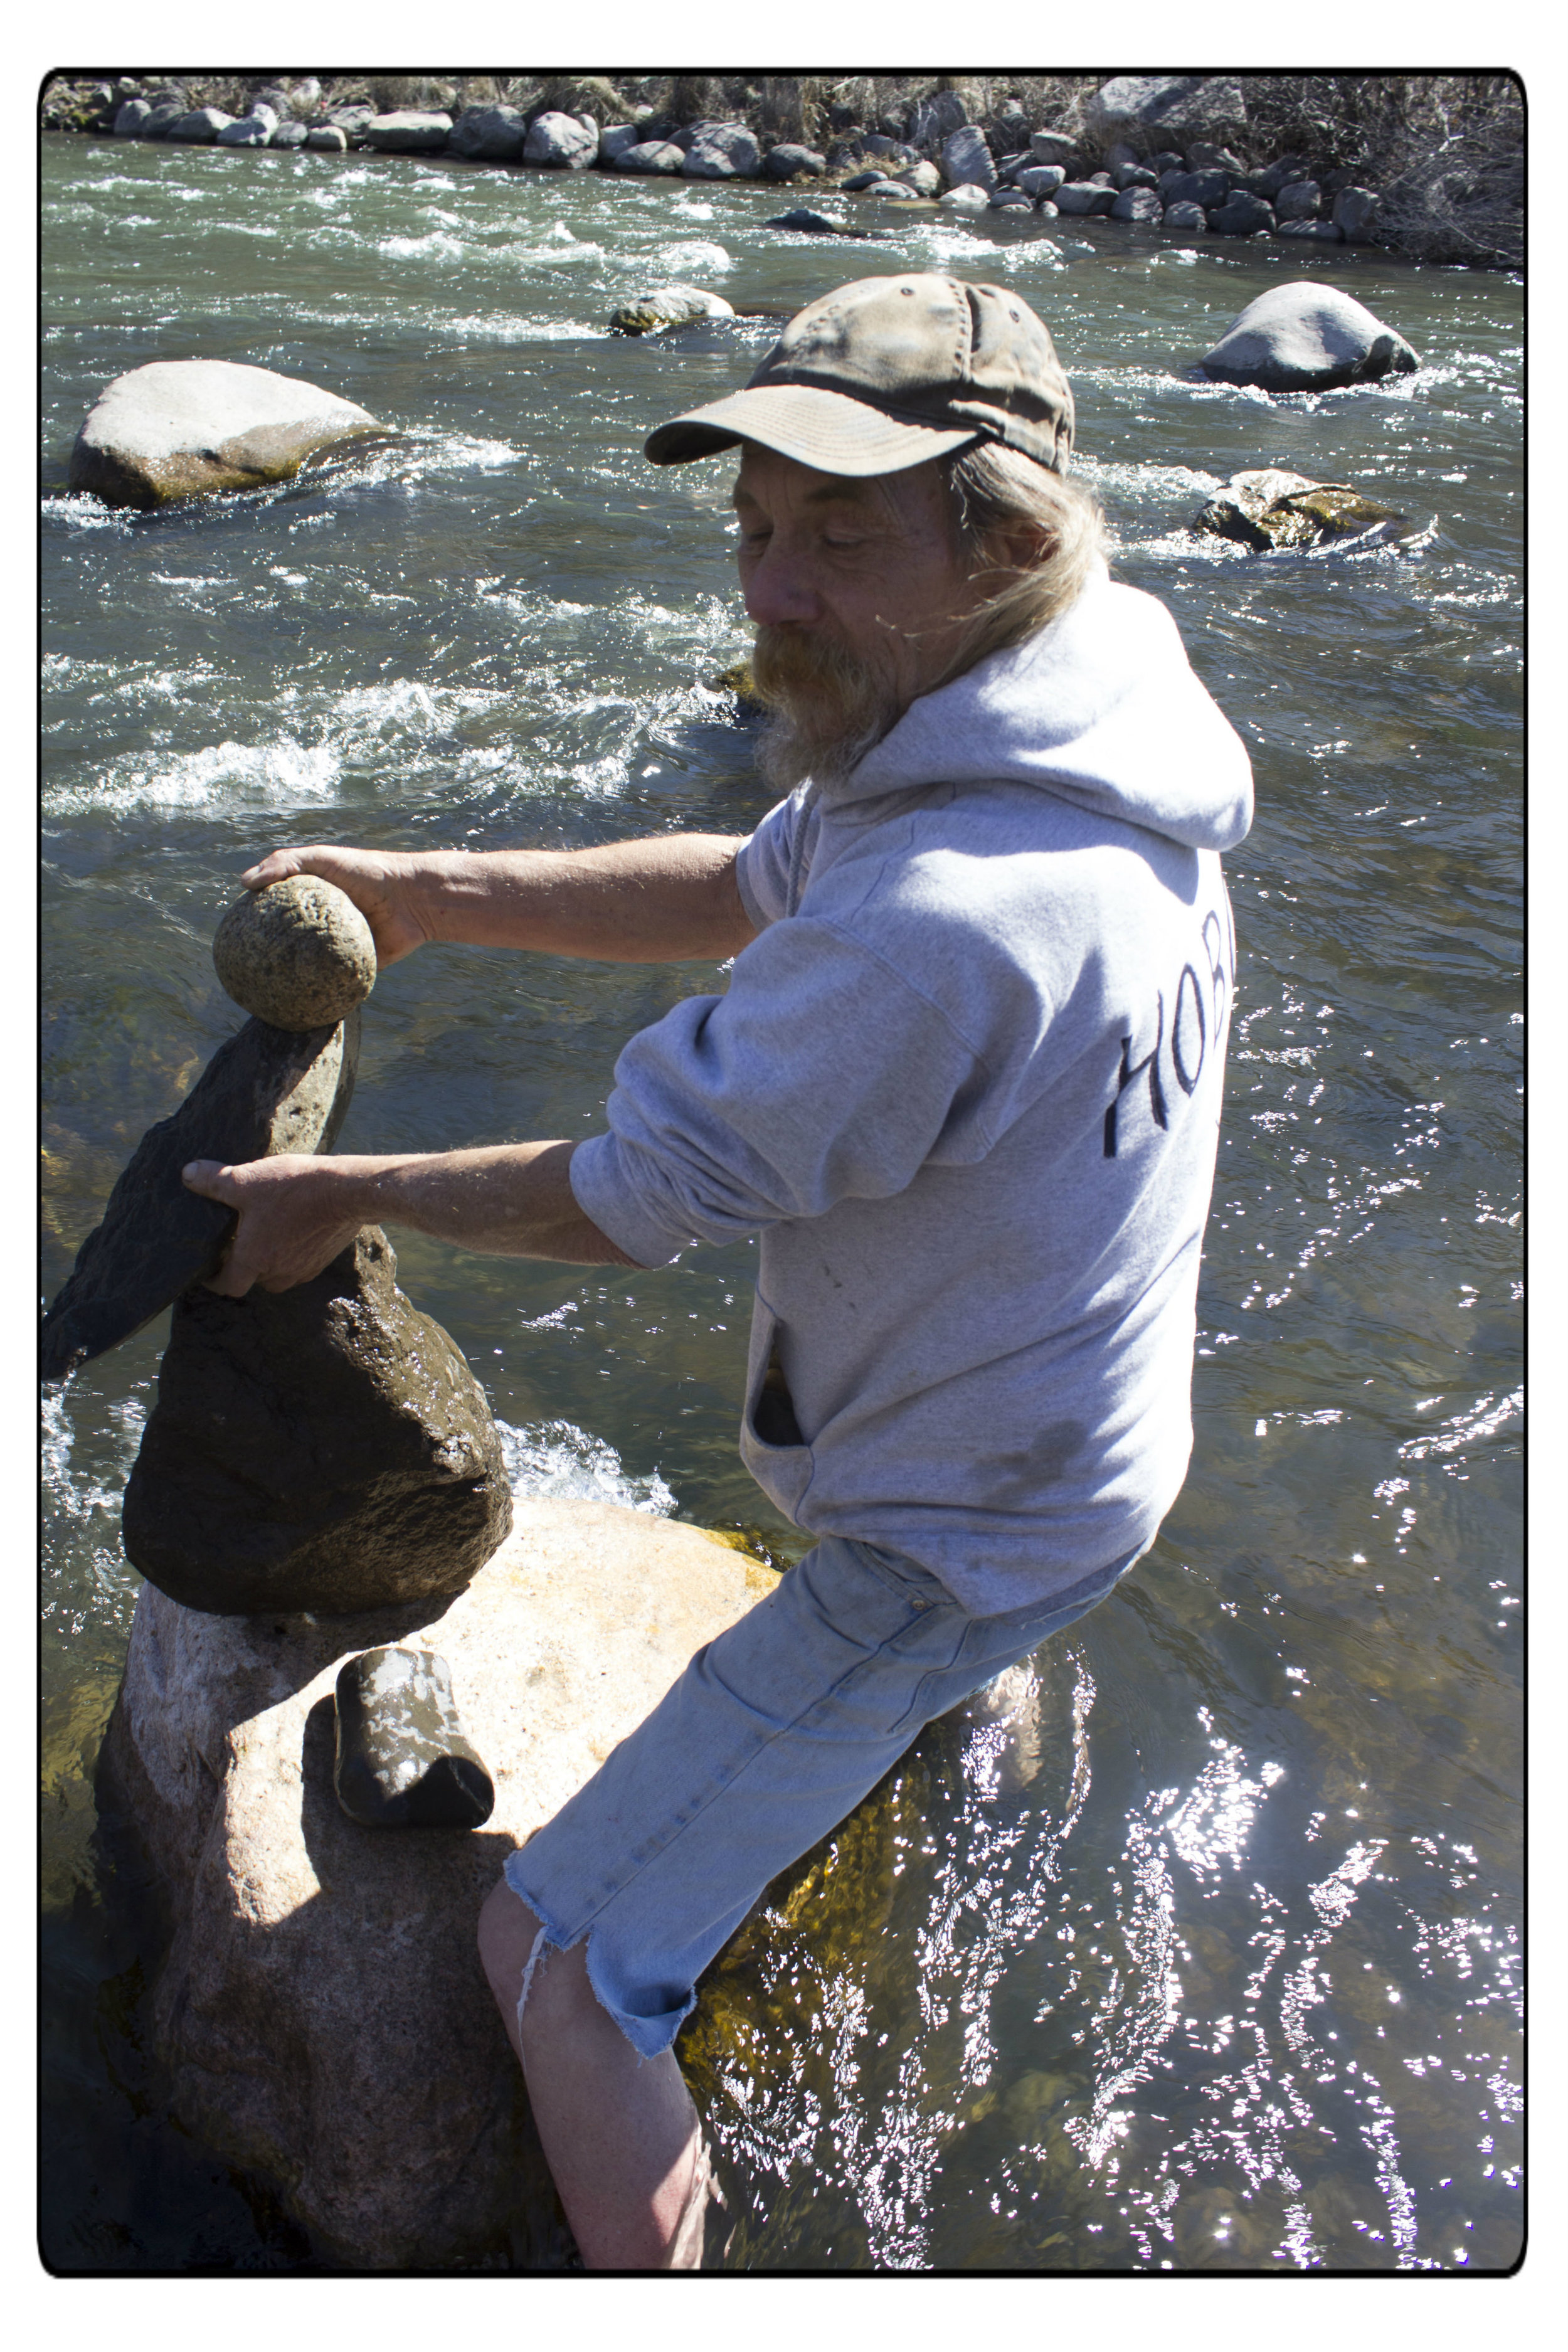 Hobo was making a rock sculpture on a big rock in the Truckee river in February 2016. Photo by Camille Loustalet